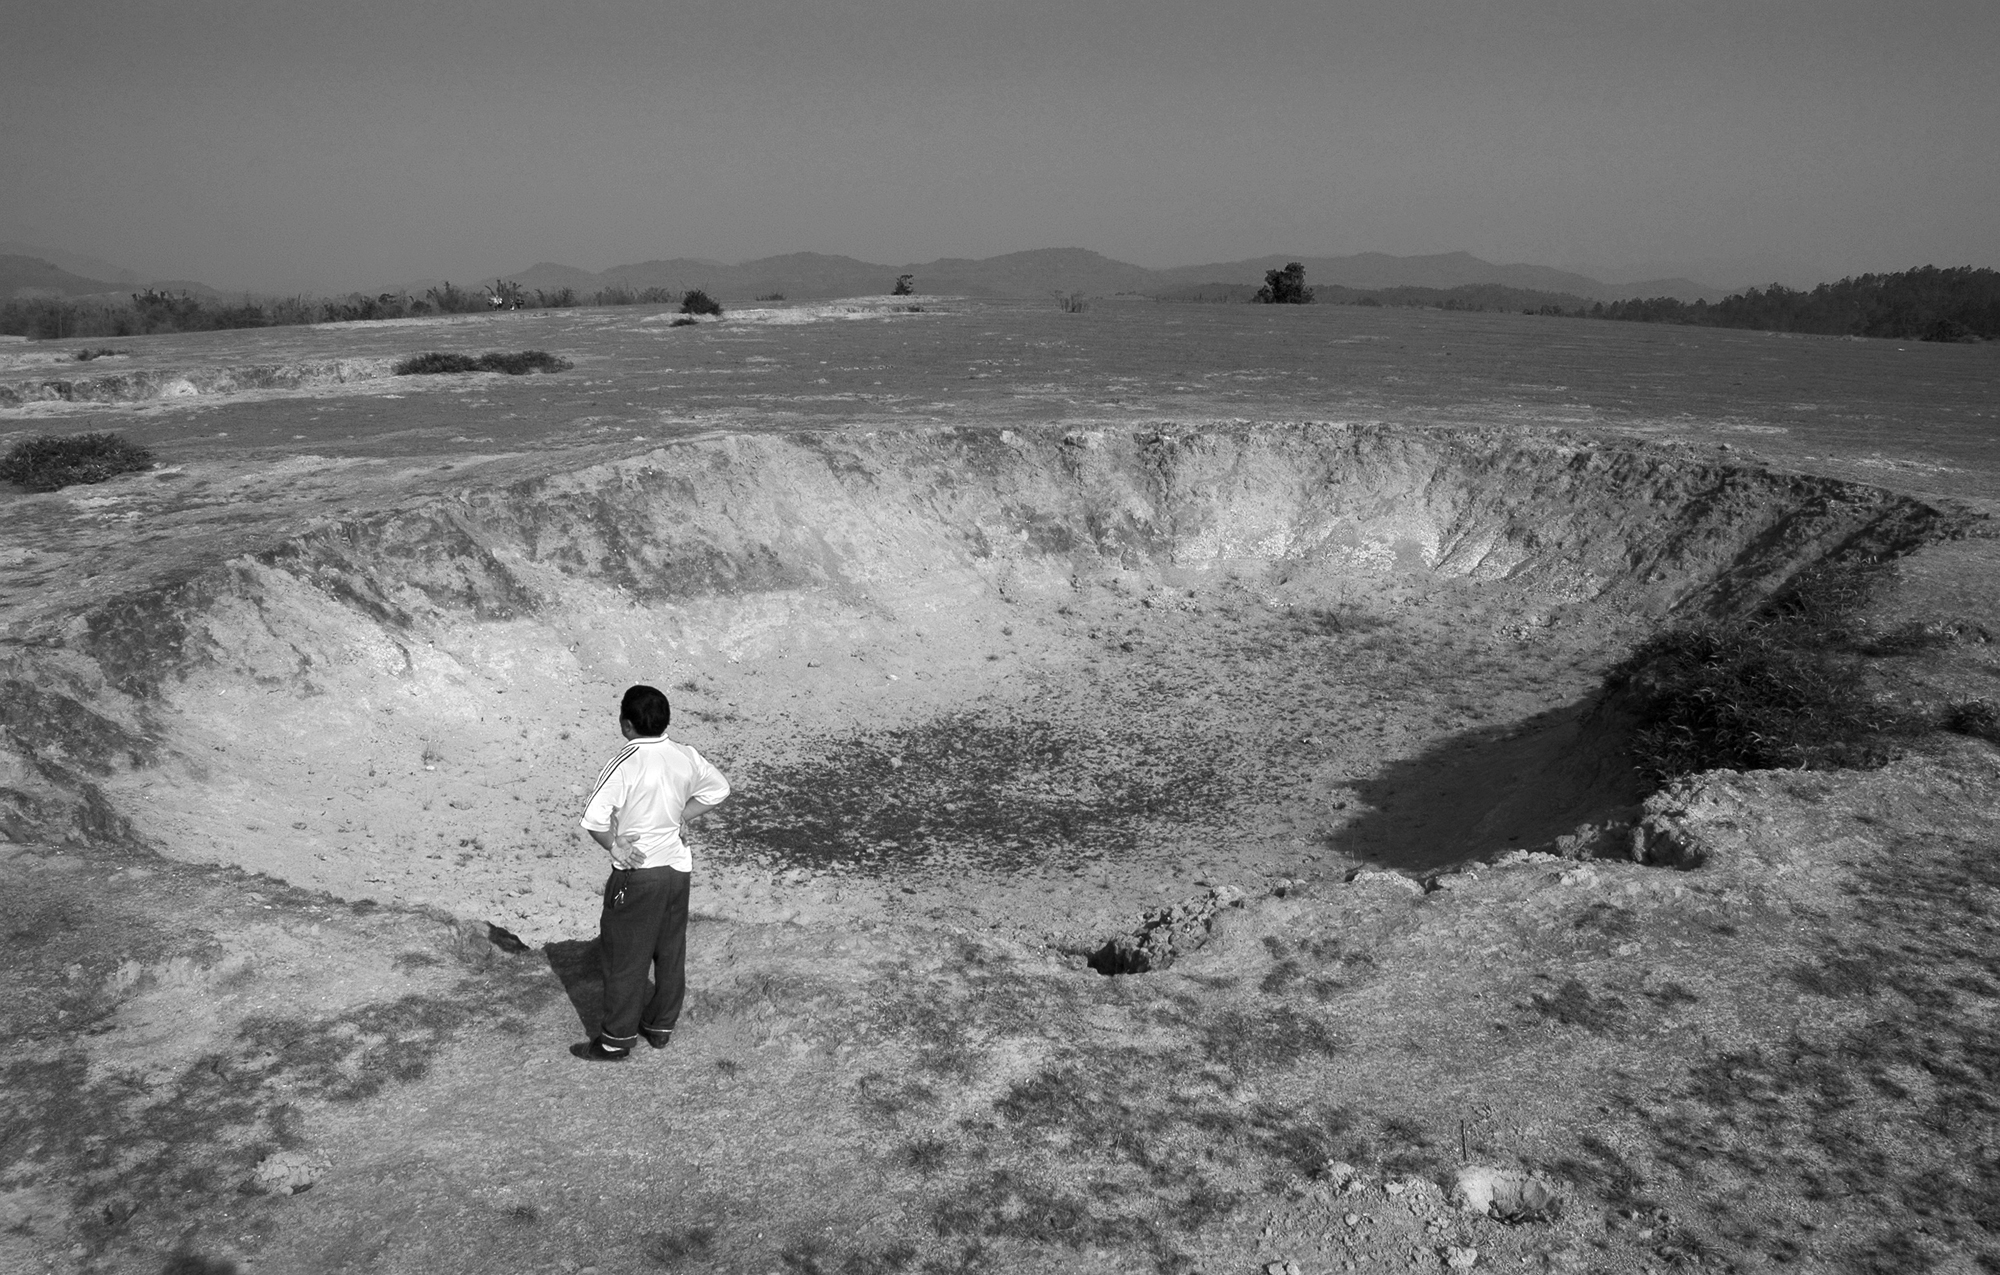 A man stands next to a 40-year-old bomb crater, one of dozens in a line stretching for miles near the Plain of Jars, in Northern Laos. Nothing grows in the craters, and people still pick shrapnel fragments from the surrounding ground.